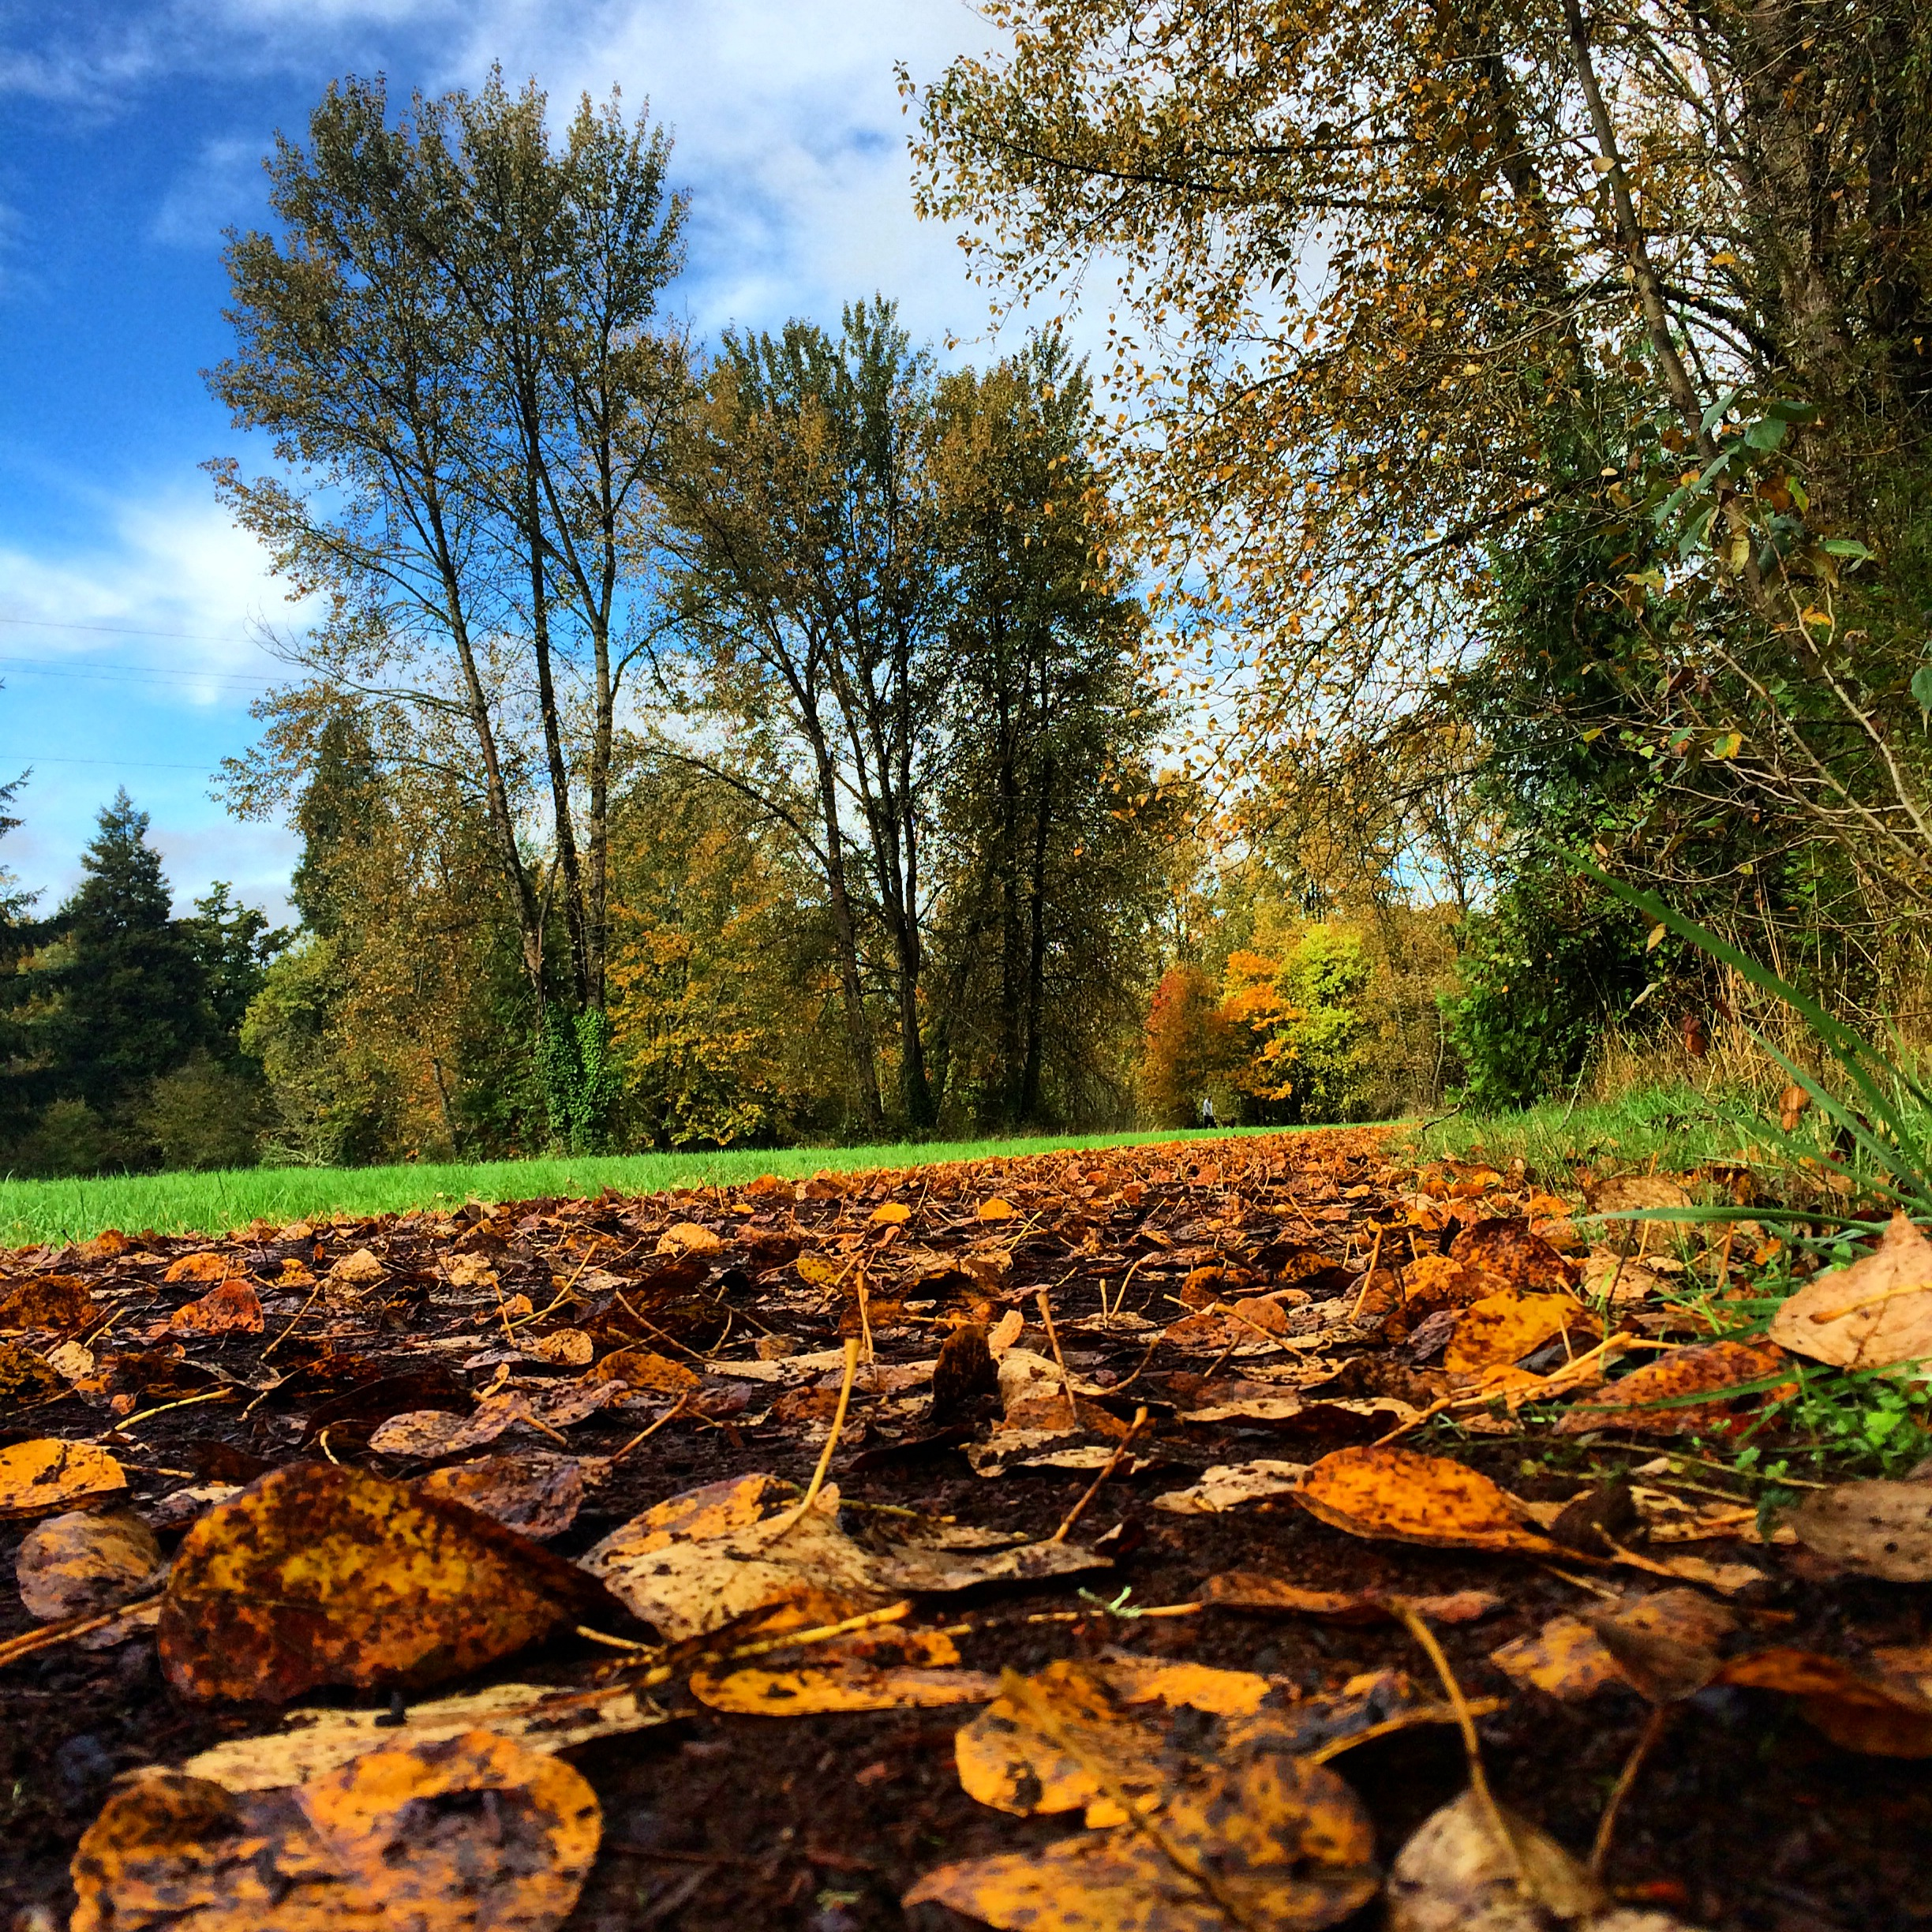 The view from a running shoe along trails through the University of Oregon.